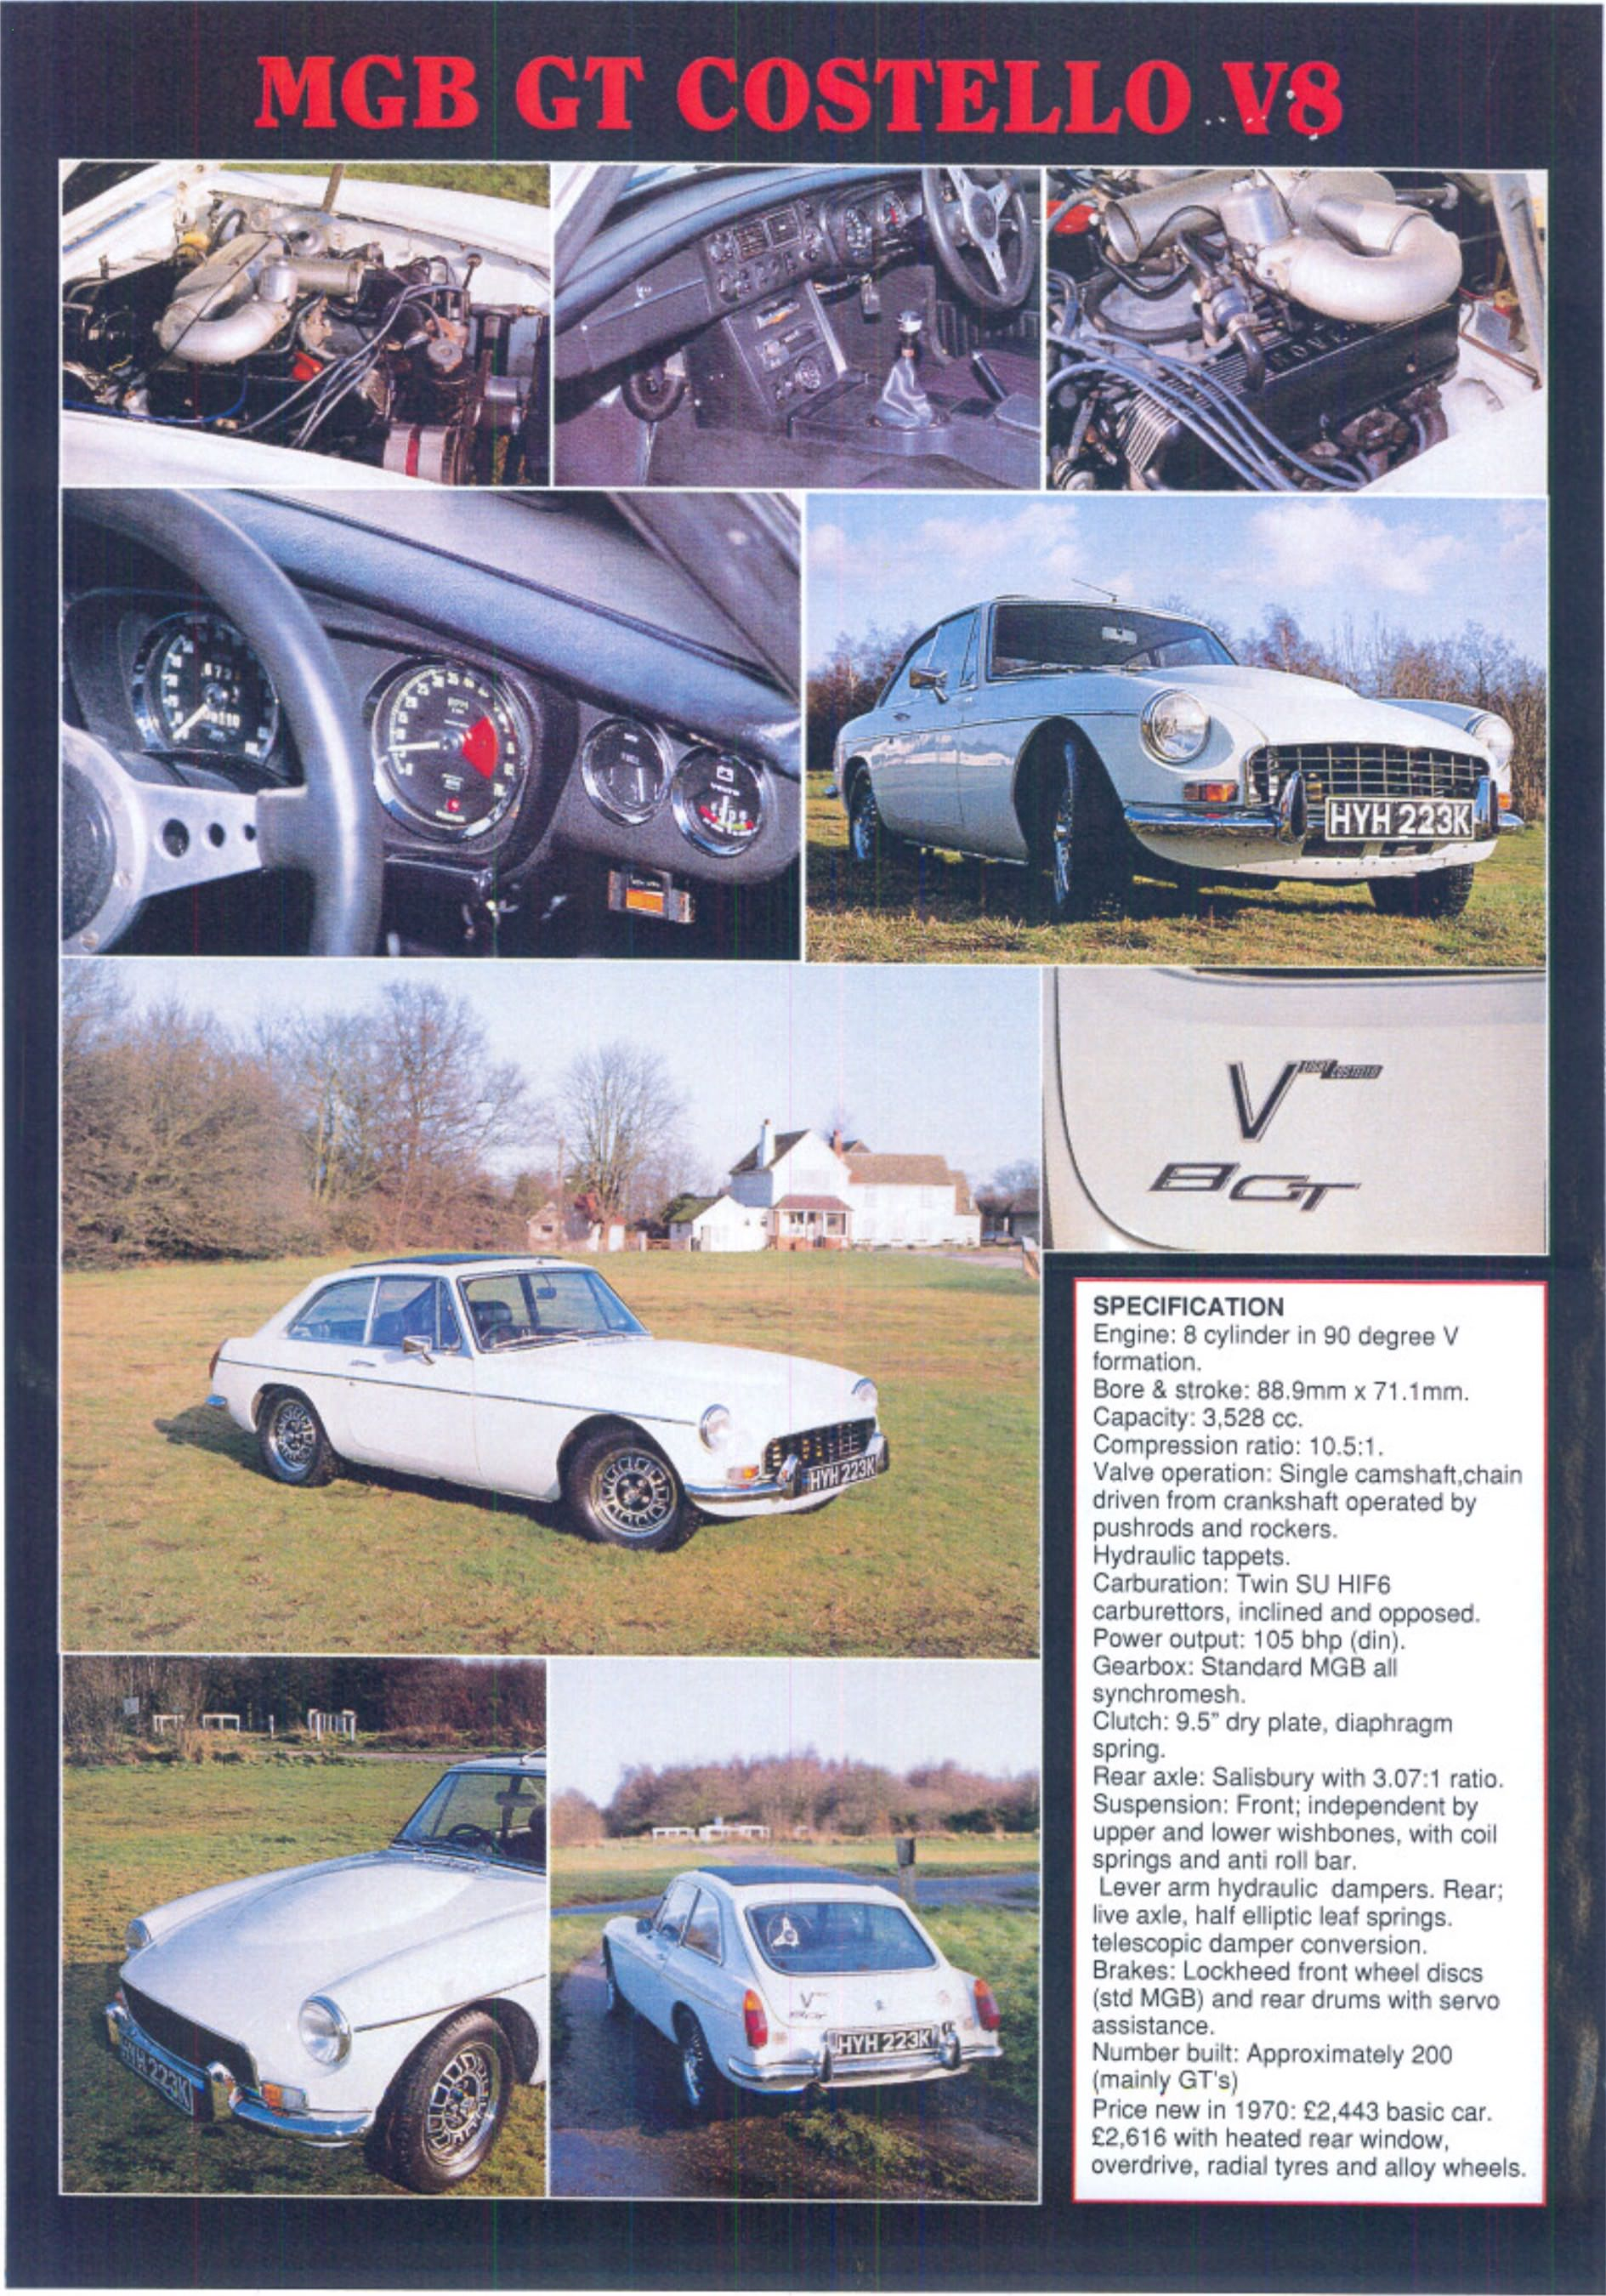 Mgb V8 Gt And Roadster The Essential Buying Guide Business Industrial Electrical Test Equipment Motors He Sourced Original American Engines From Overseas For His Conversions So Costello Cars Will Often Be Fitted With Those Lighter More Powerful